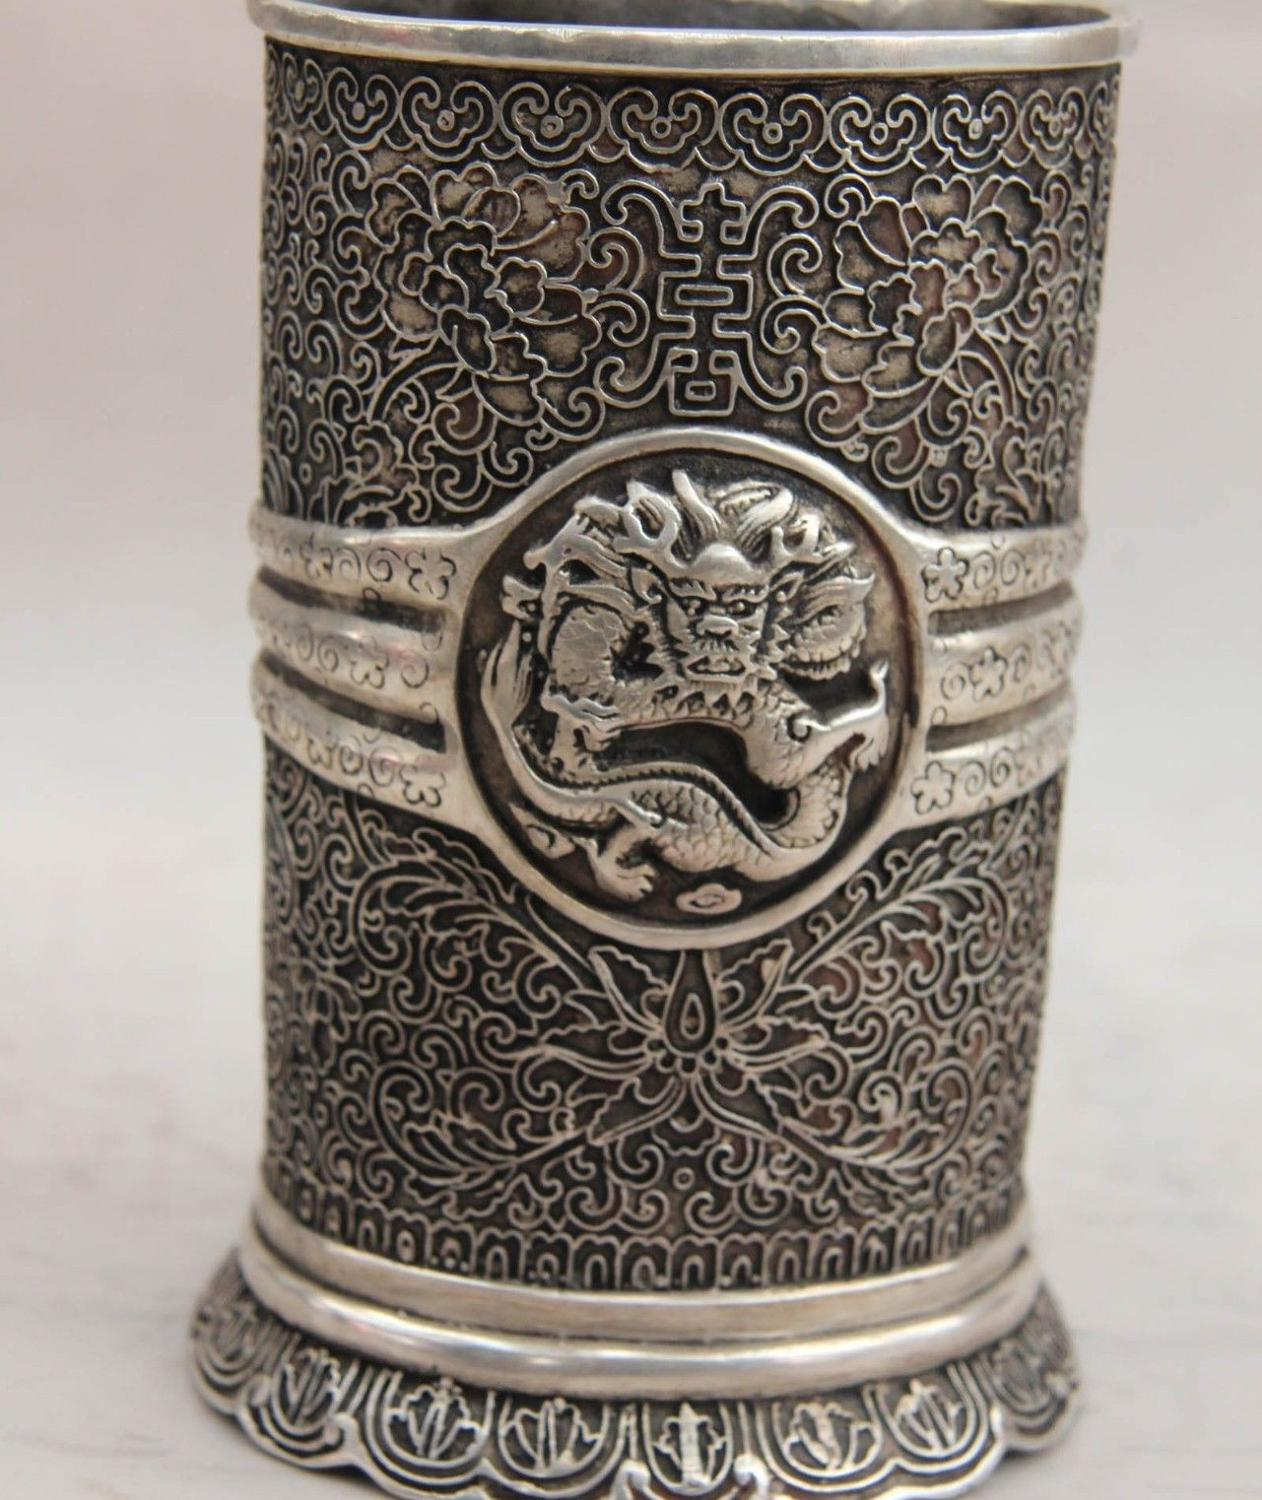 China White Copper Silver Animal Dragon pattern Pen case container brush potChina White Copper Silver Animal Dragon pattern Pen case container brush pot